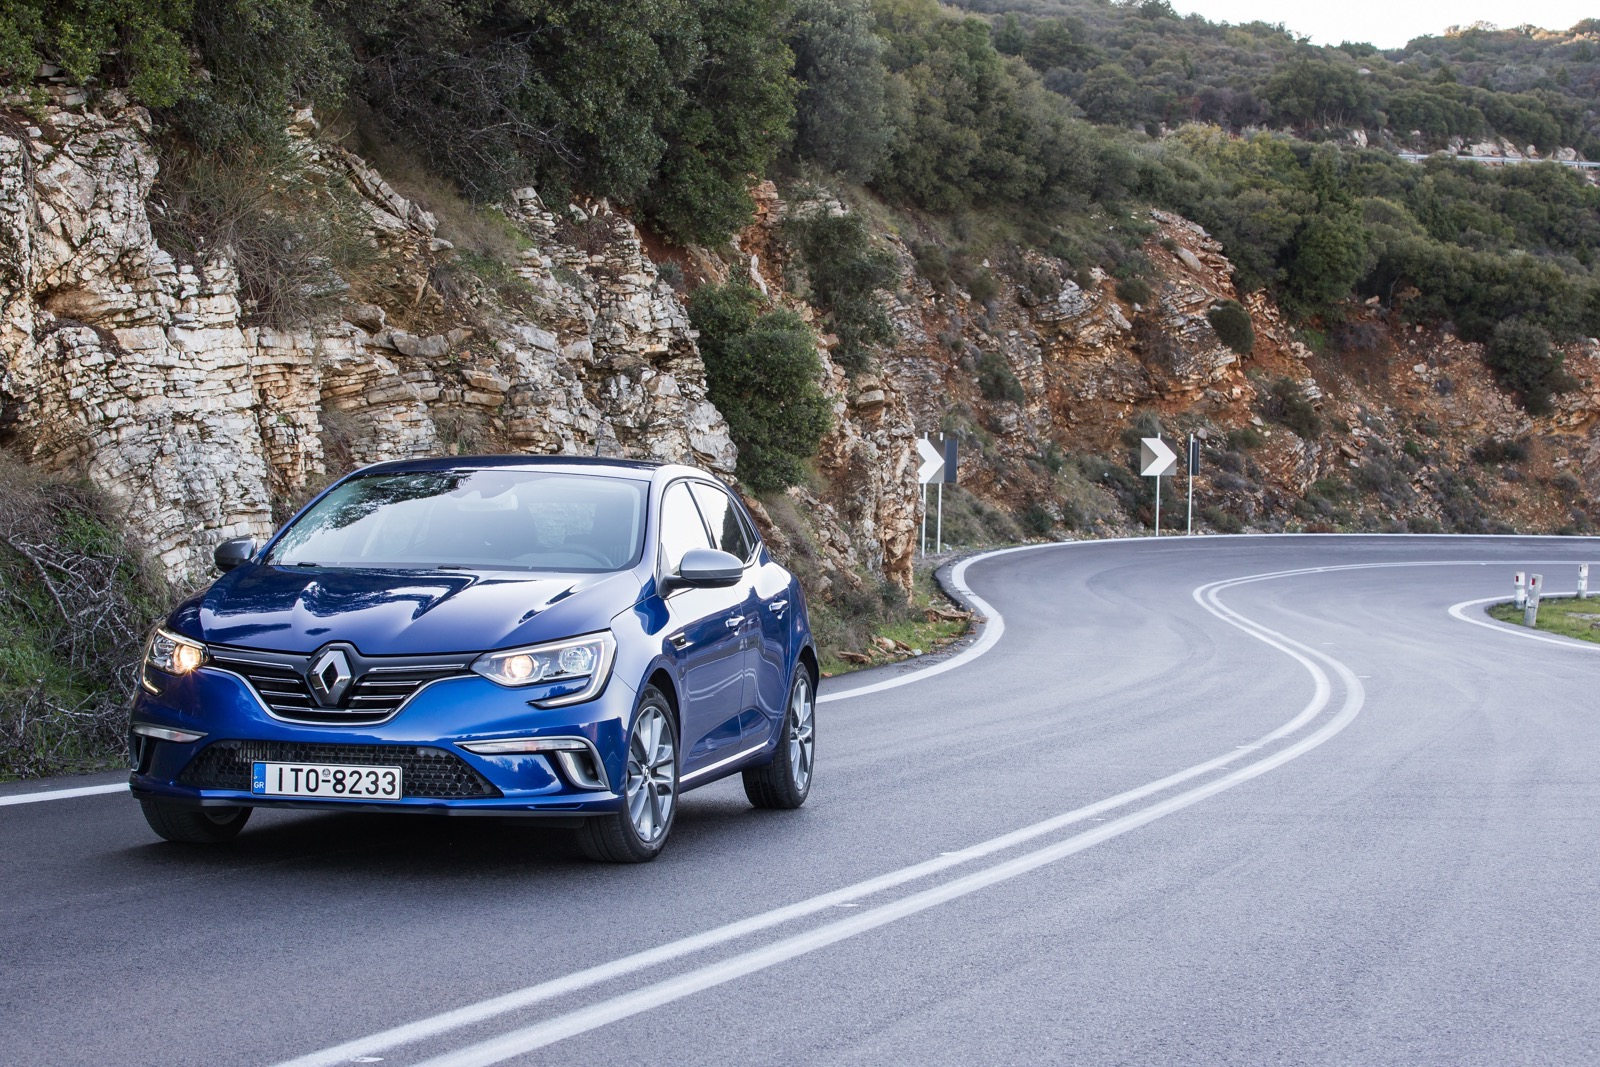 First_Drive_Renault_Megane_23